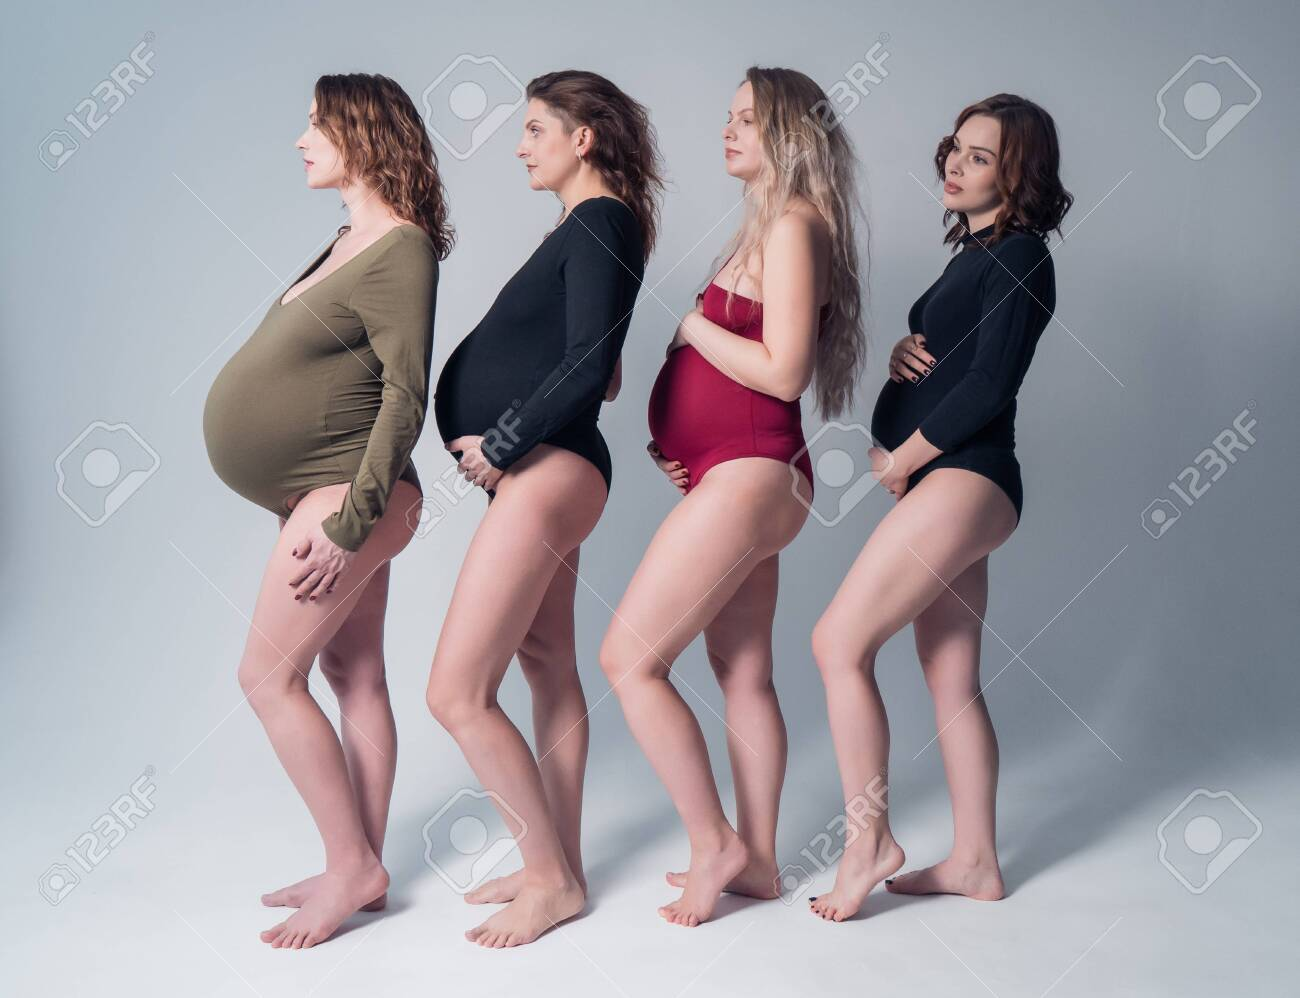 Four beautiful pregnant woman in swimsuit standing one behind the other on a white background. - 140600163